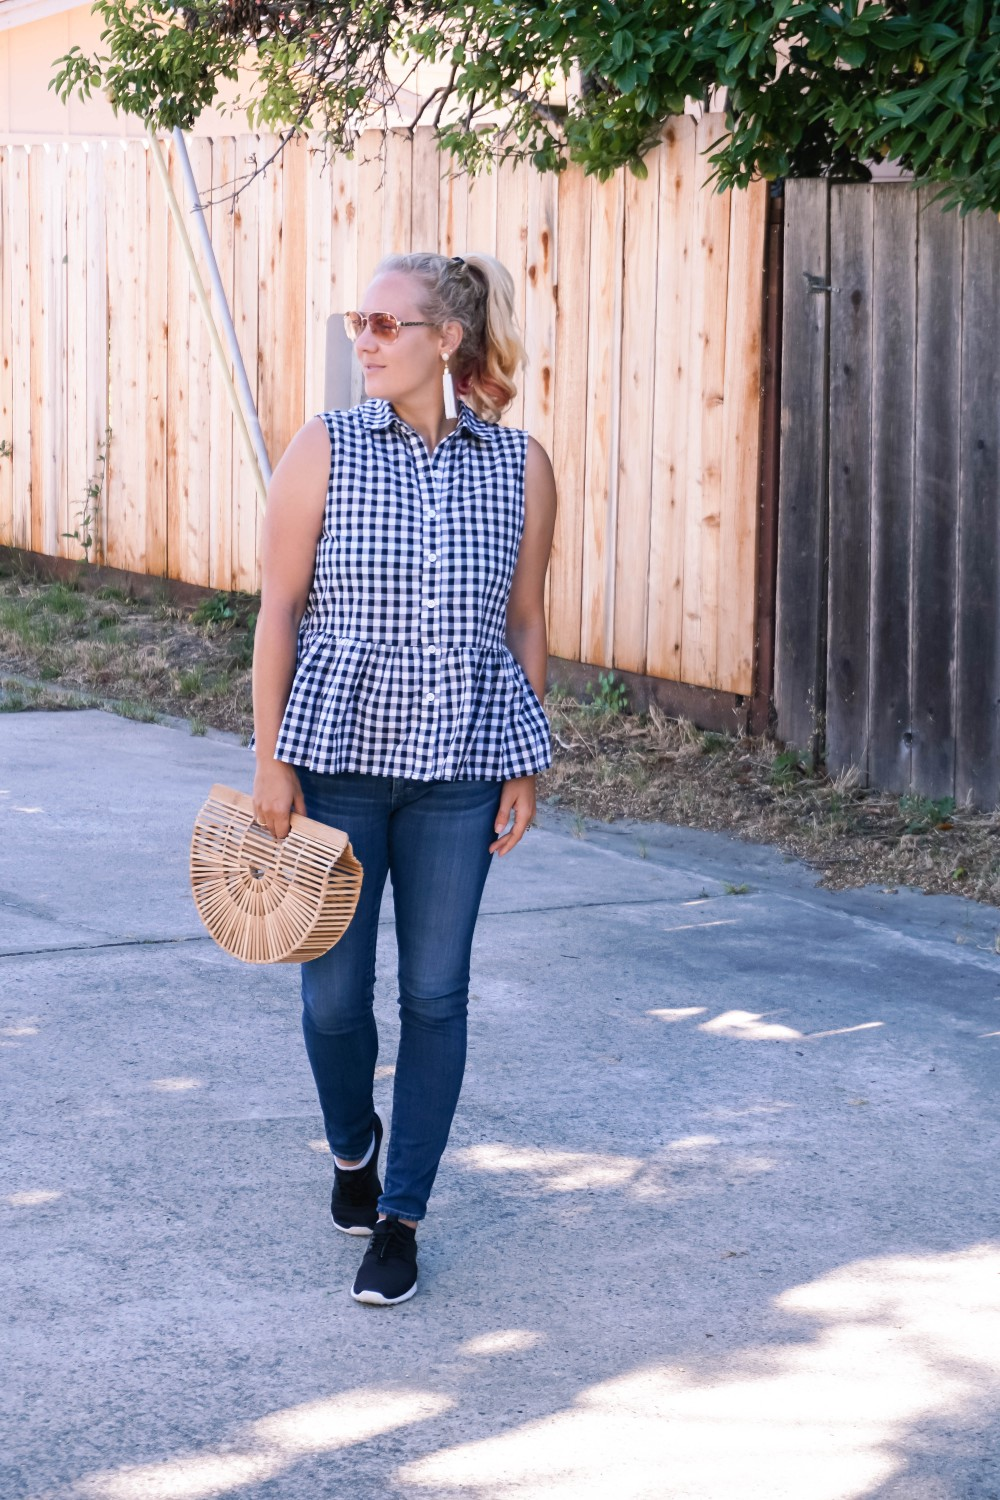 Blogger Off Duty-Daily Outfit Series-Have Need Want-Romwe Gingham Bow Top-Gingham Top-Summer Style-Mom Style-Stylish Moms-Outfit Inspiration 3